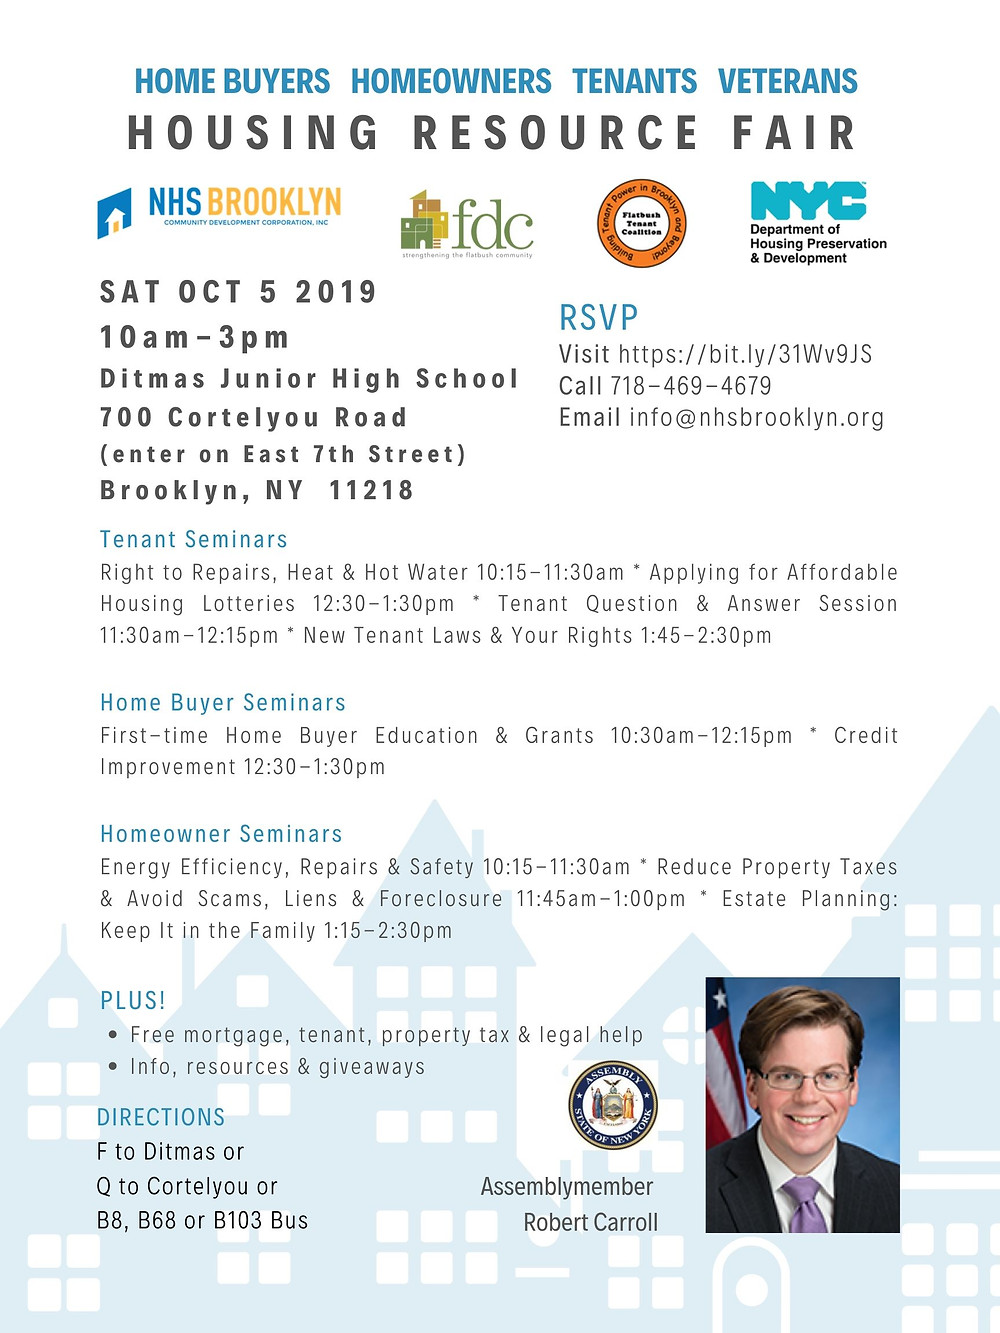 housing resource fair nhs brooklyn nyc fdc flatbush tenants robert carroll ditmas junior high kensington 2019